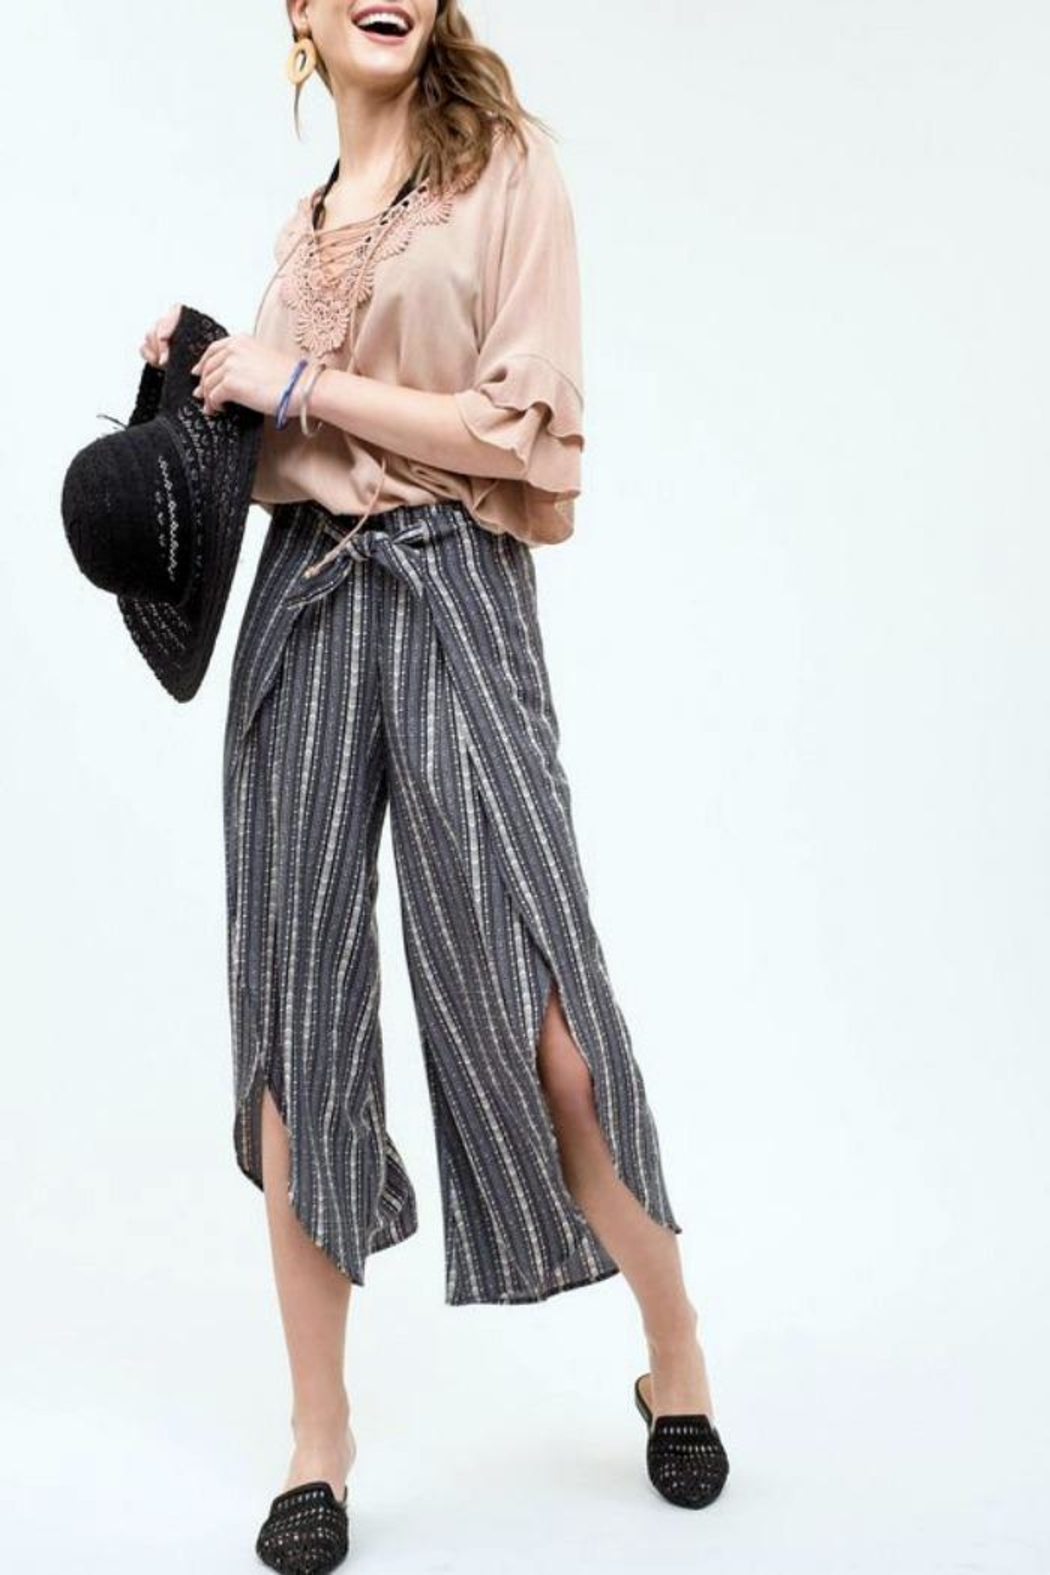 Blu Pepper Print Tie Pants - Main Image